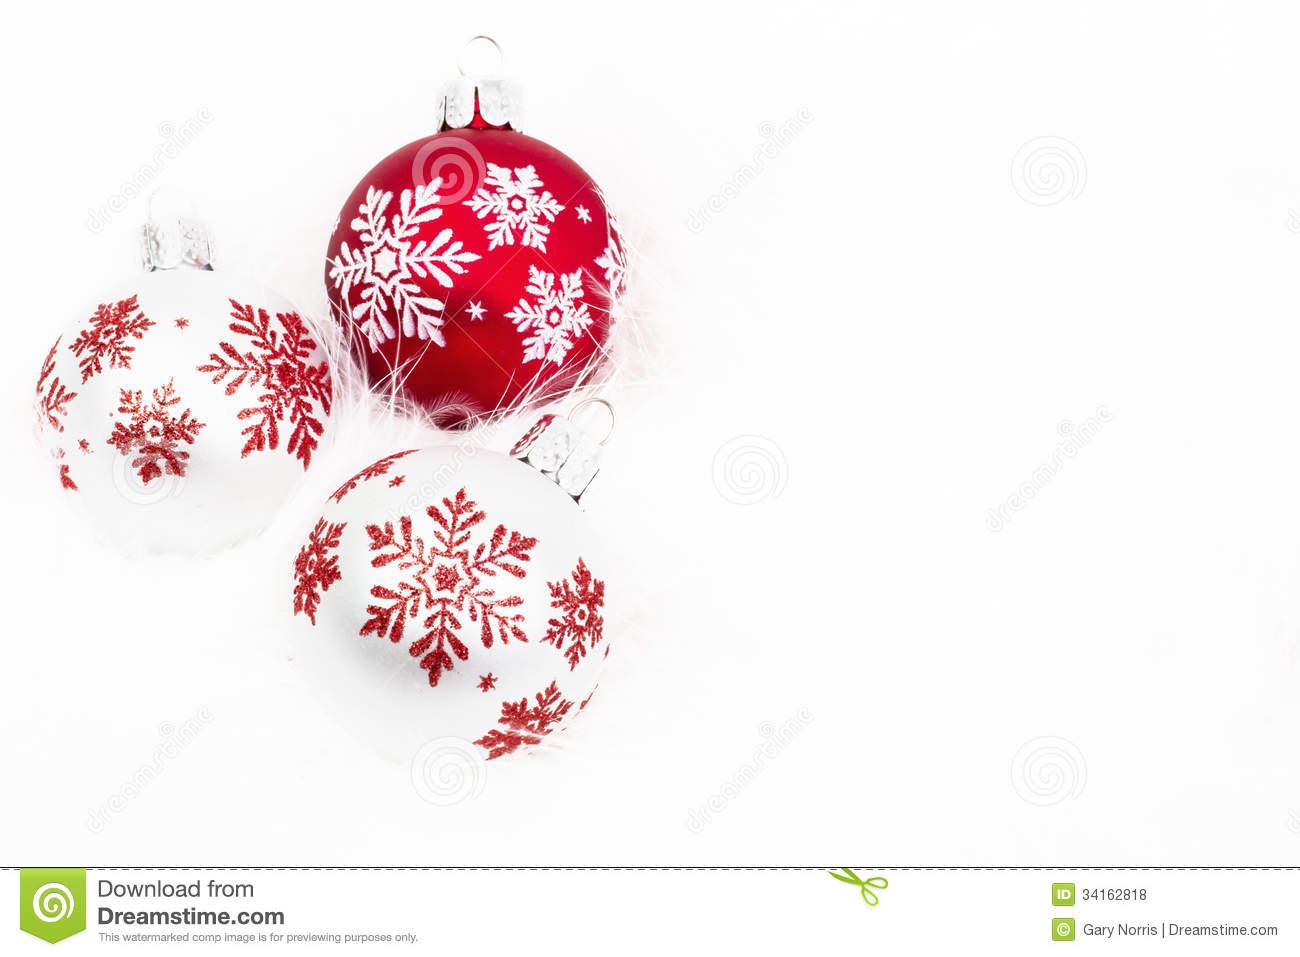 Snowflake Christmas Ornaments Stock Photo - Image of light, white ...